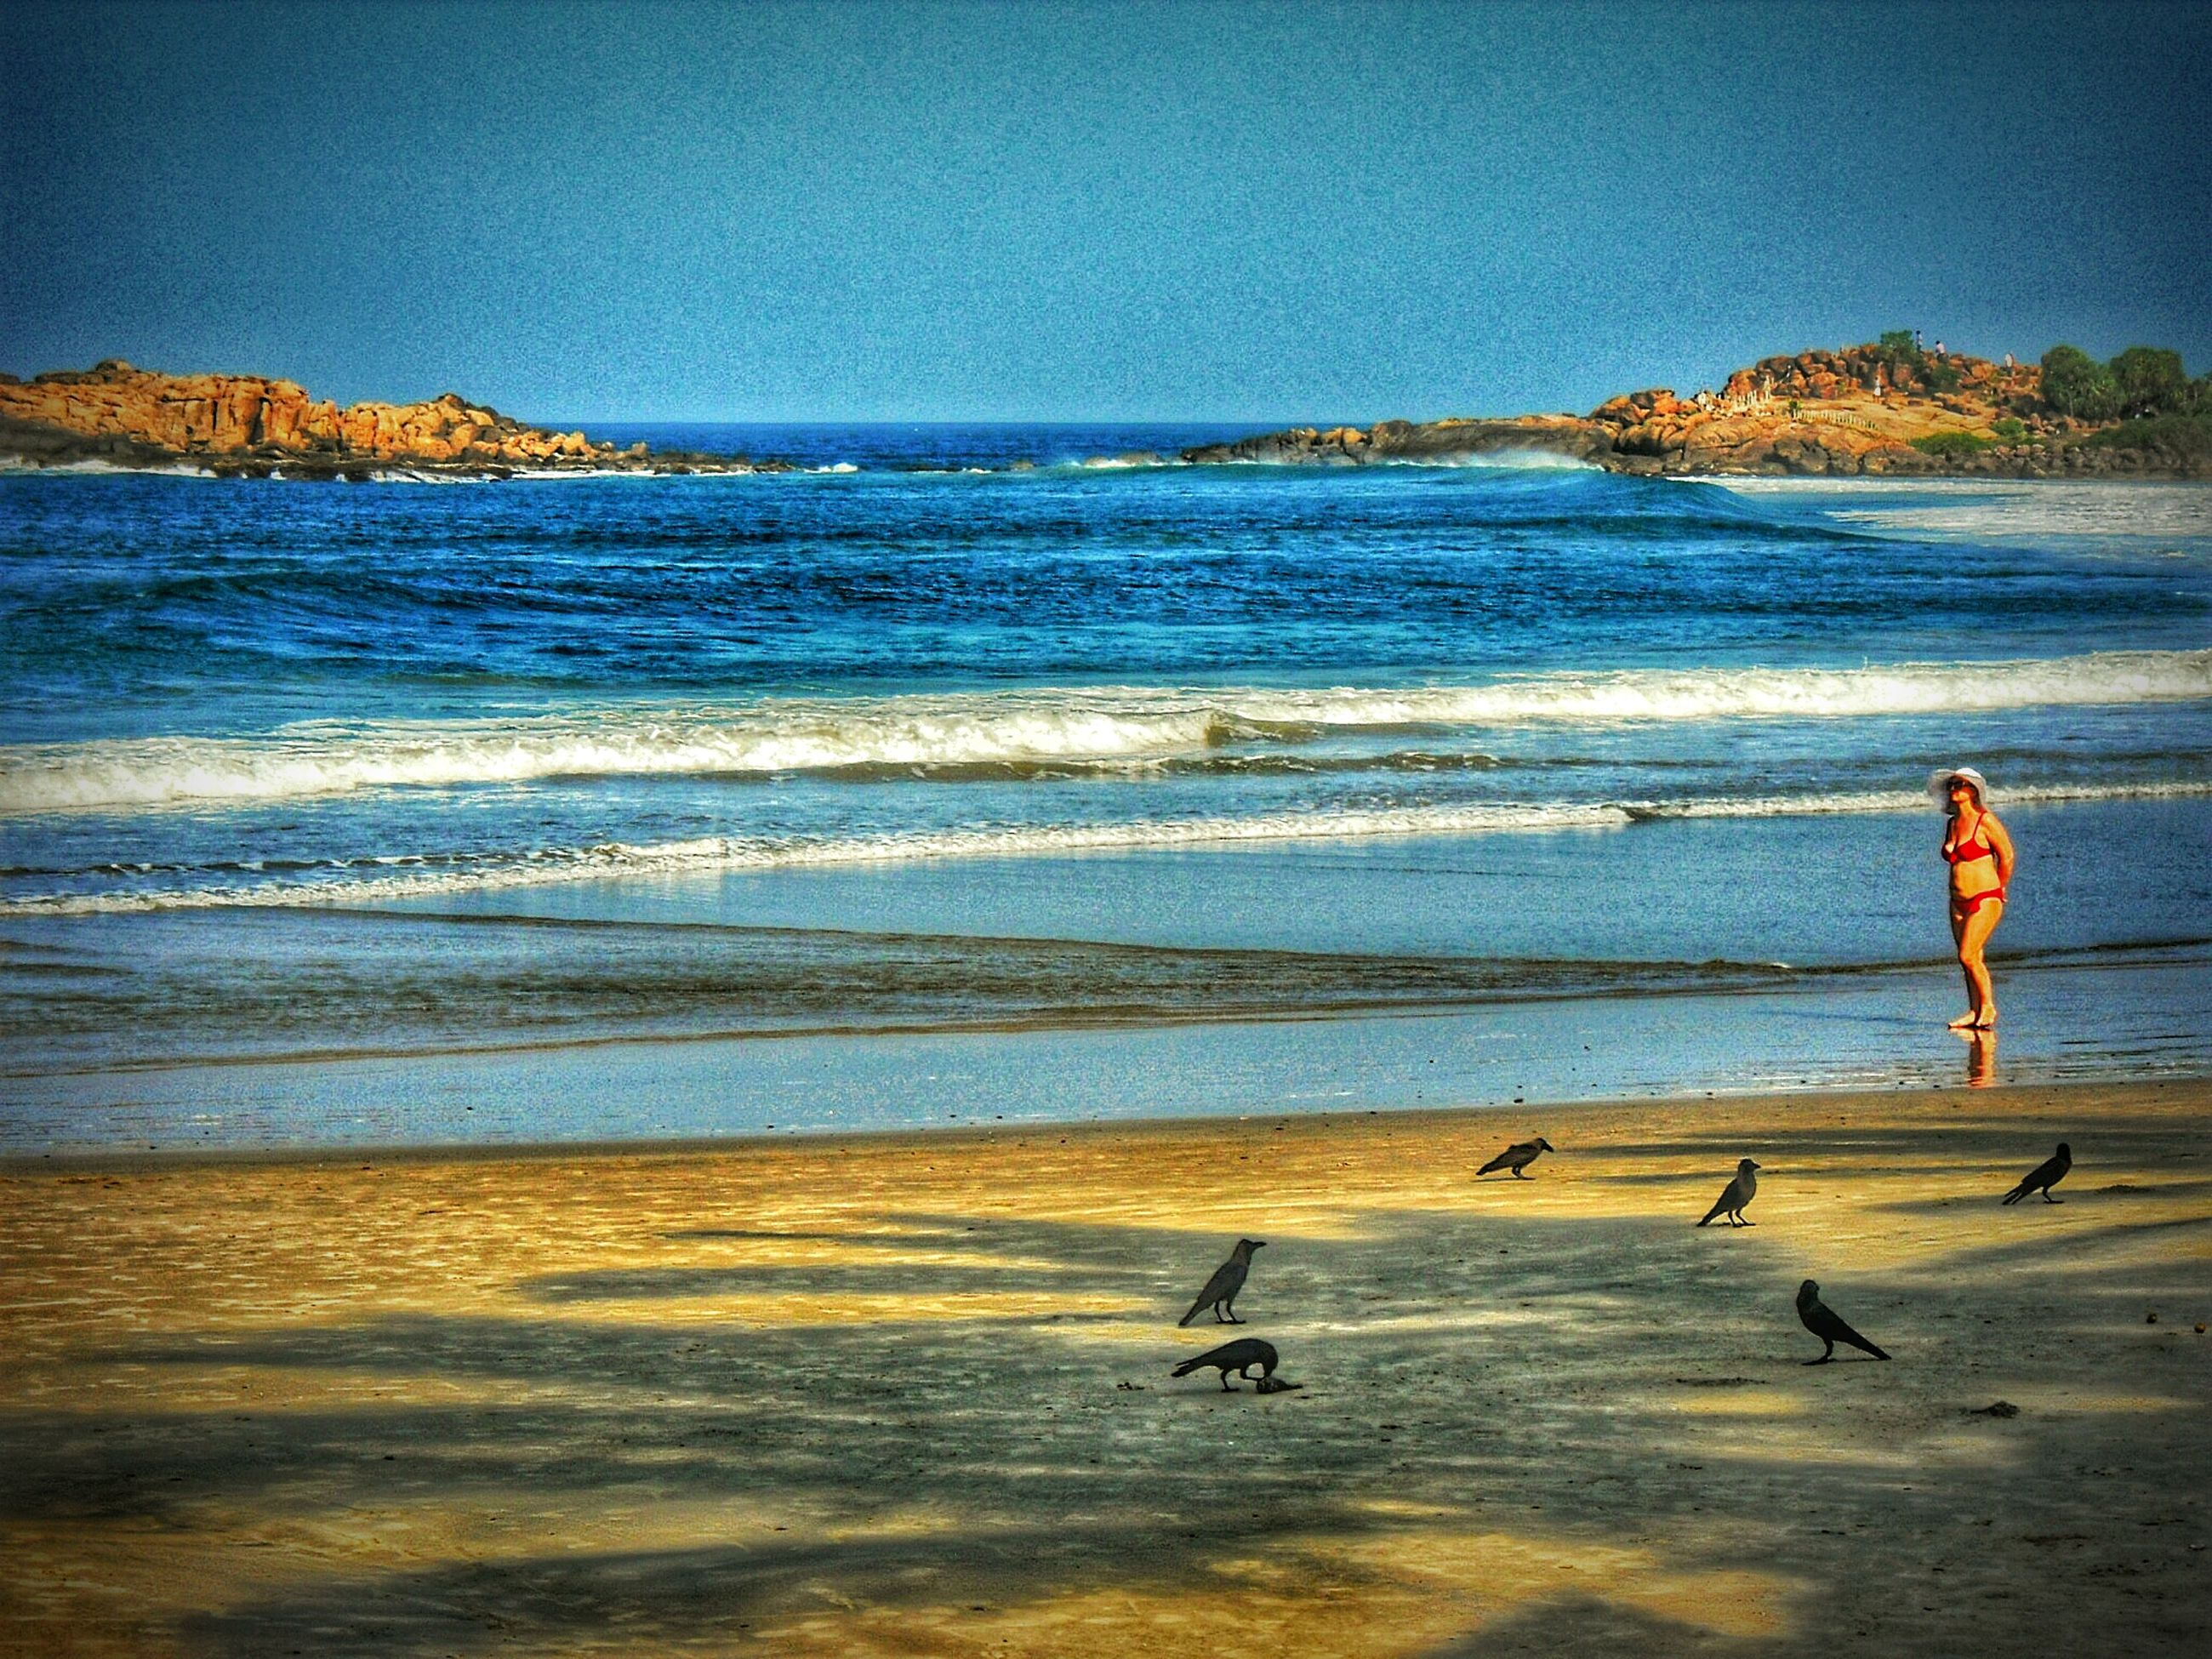 sea, water, beach, horizon over water, shore, scenics, beauty in nature, sand, clear sky, tranquility, tranquil scene, blue, full length, nature, wave, leisure activity, bird, sky